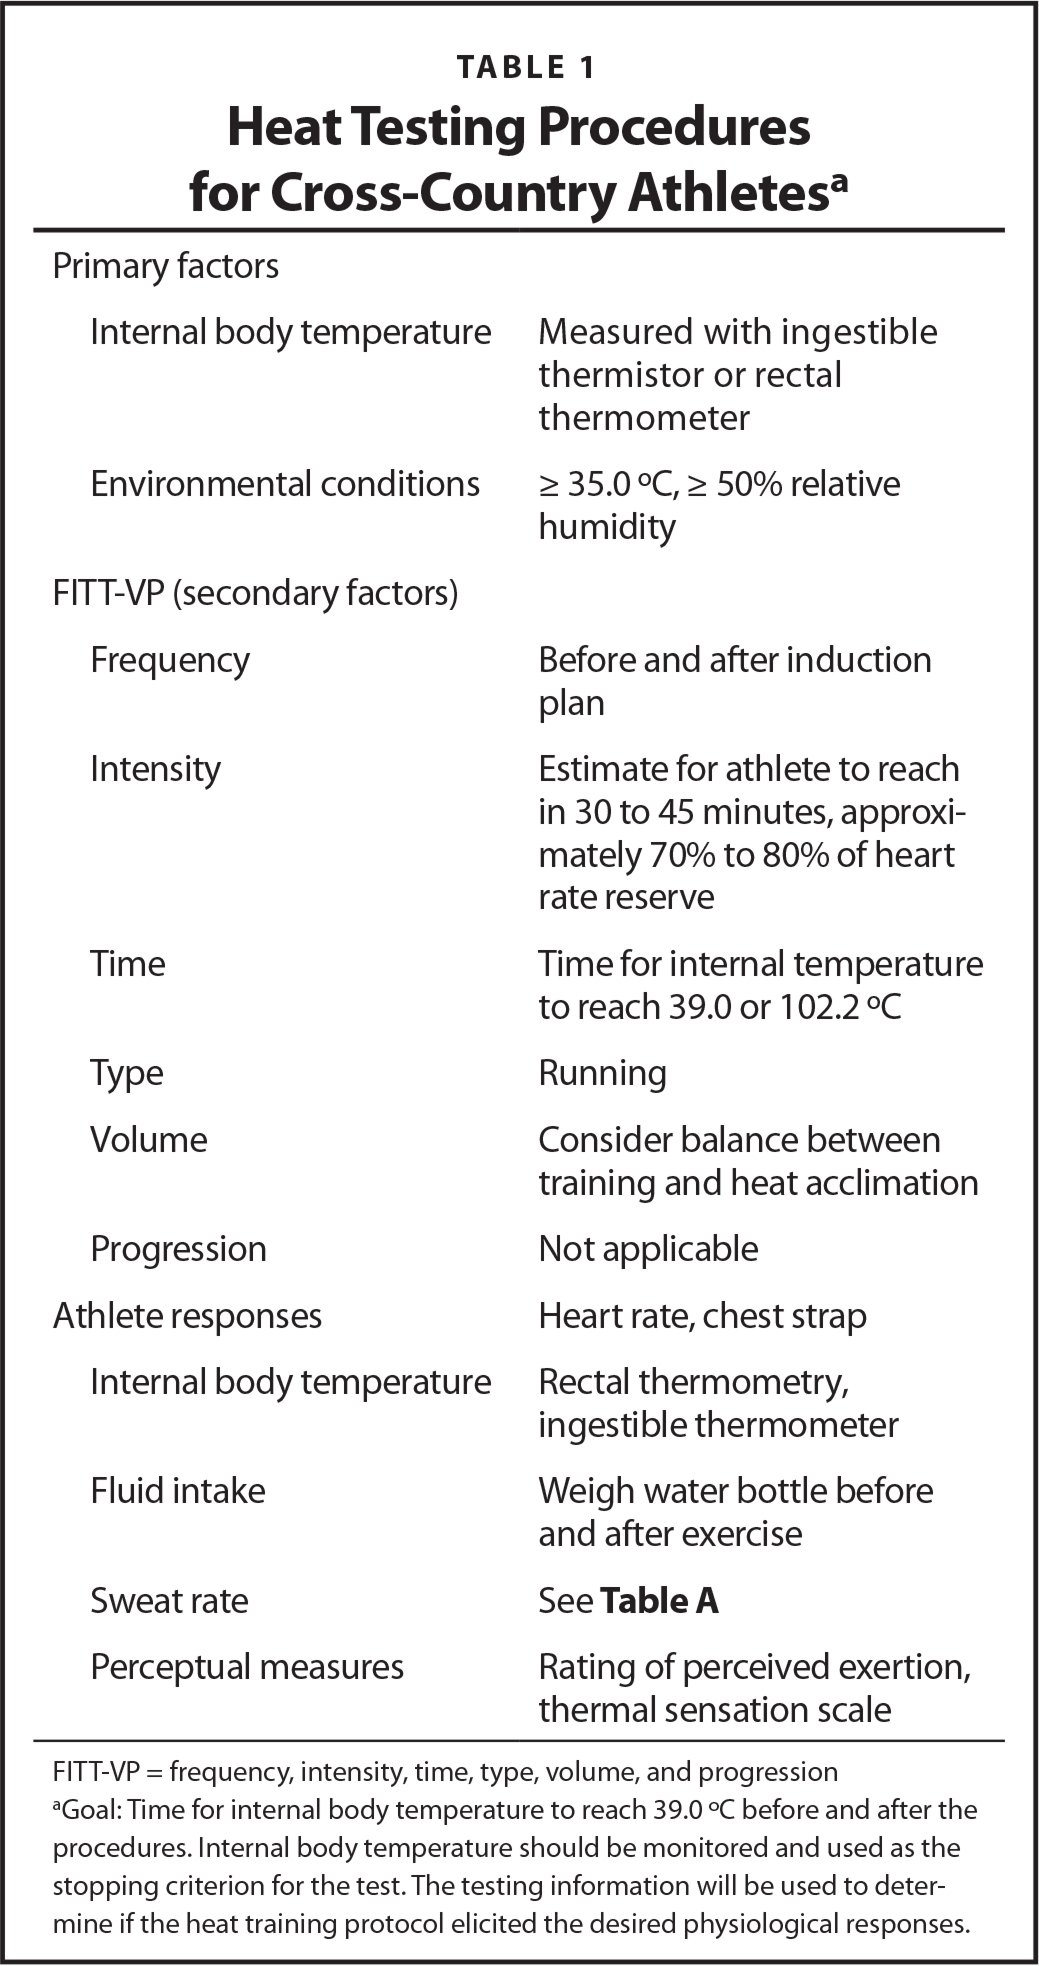 Heat Testing Procedures for Cross-Country Athletesa